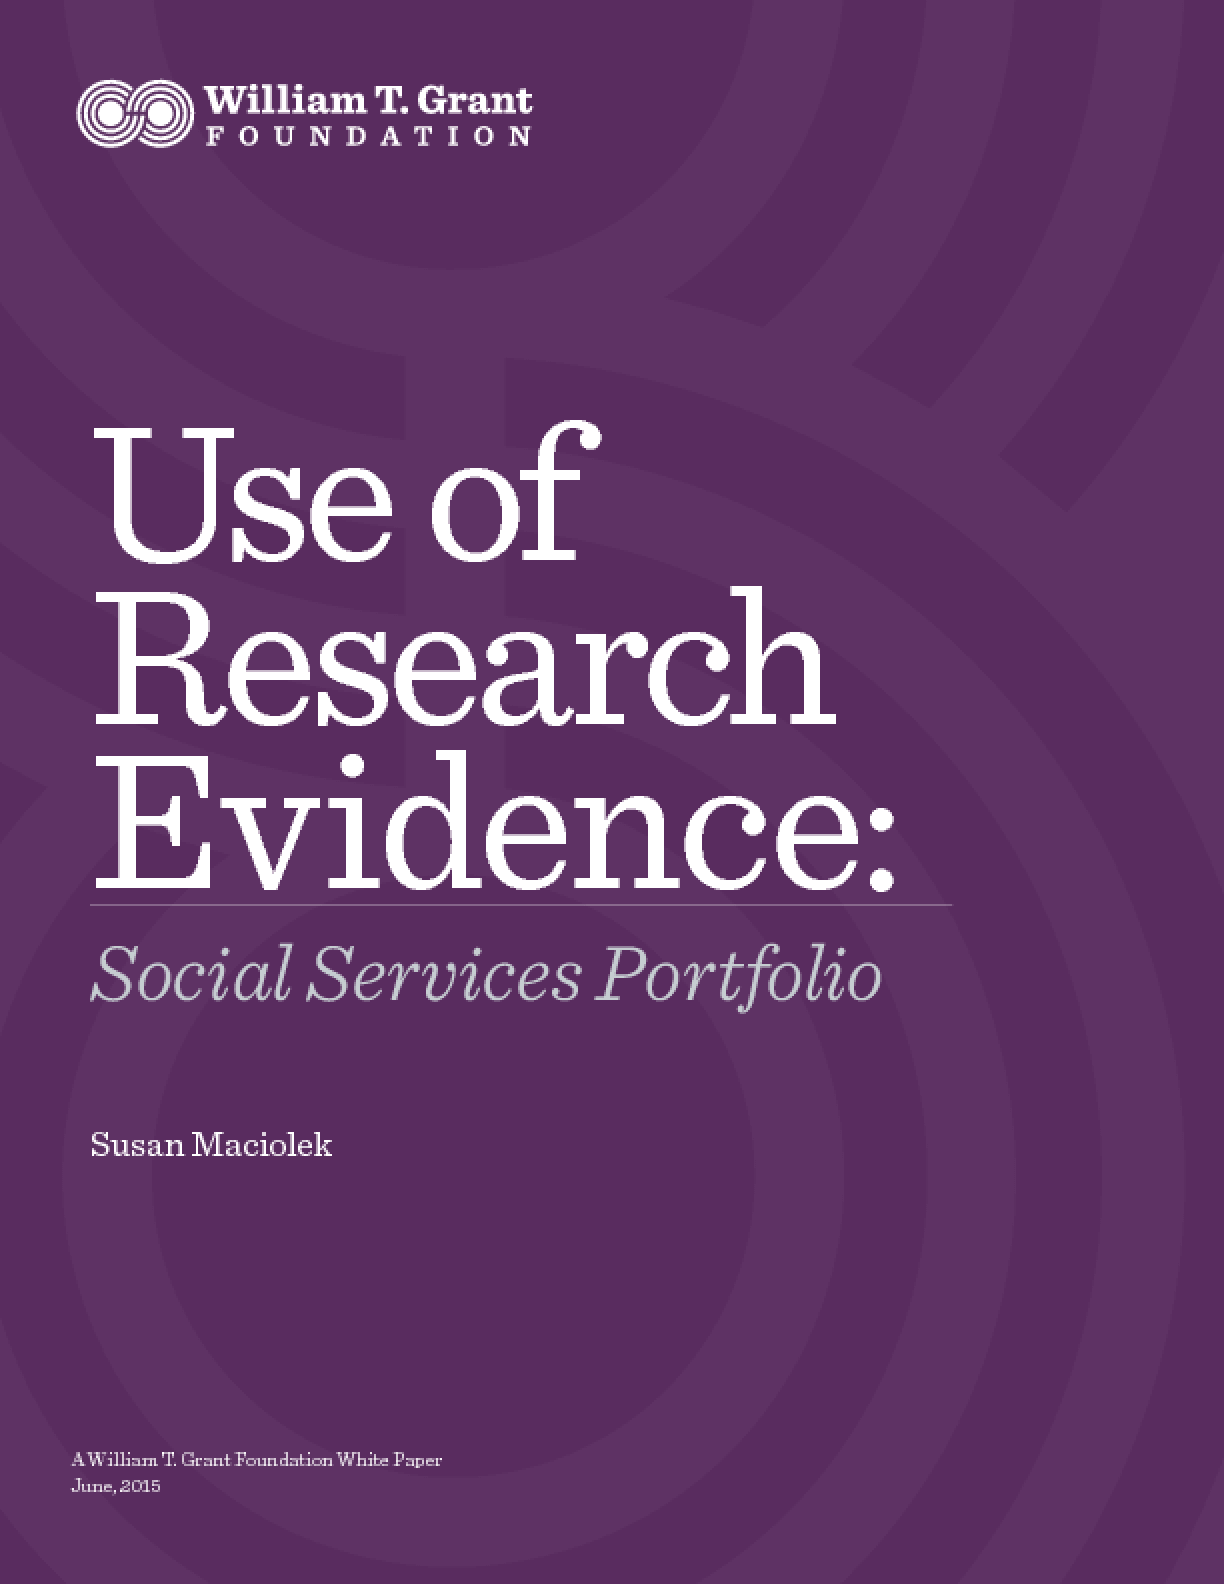 Use of Research Evidence: Social Services Portfolio